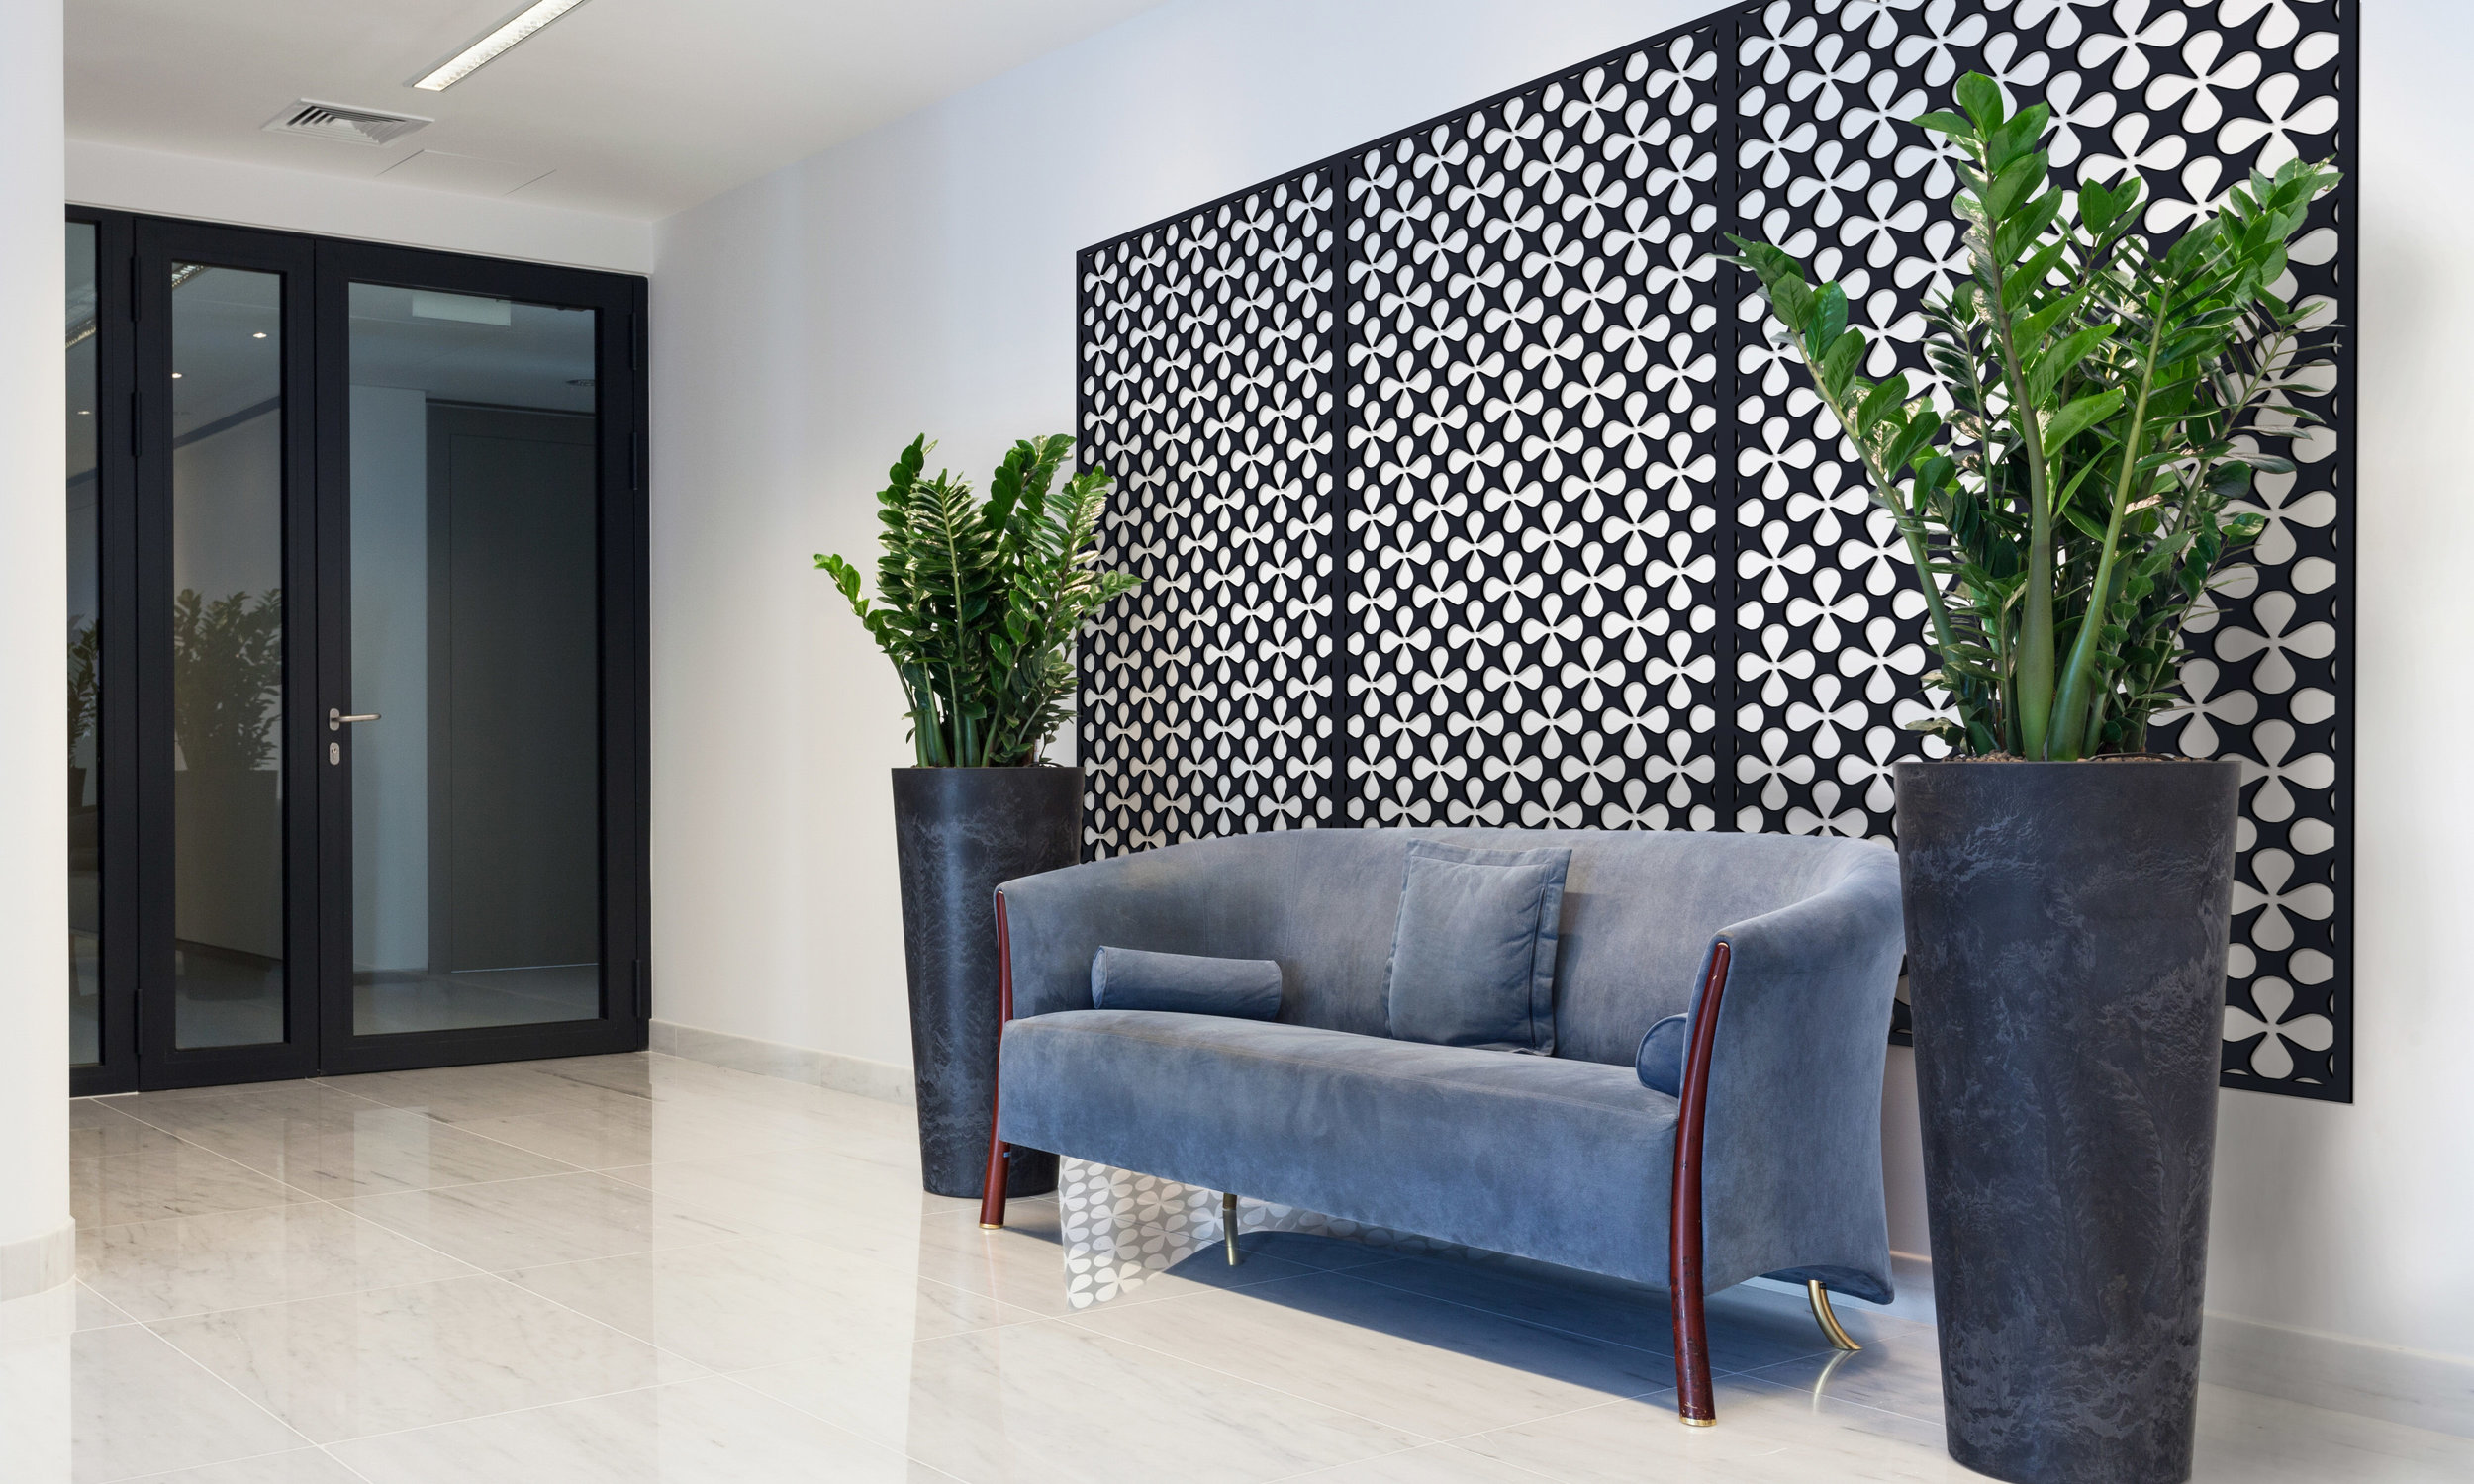 Installation Rendering B   Atomic decorative office wall panel - painted